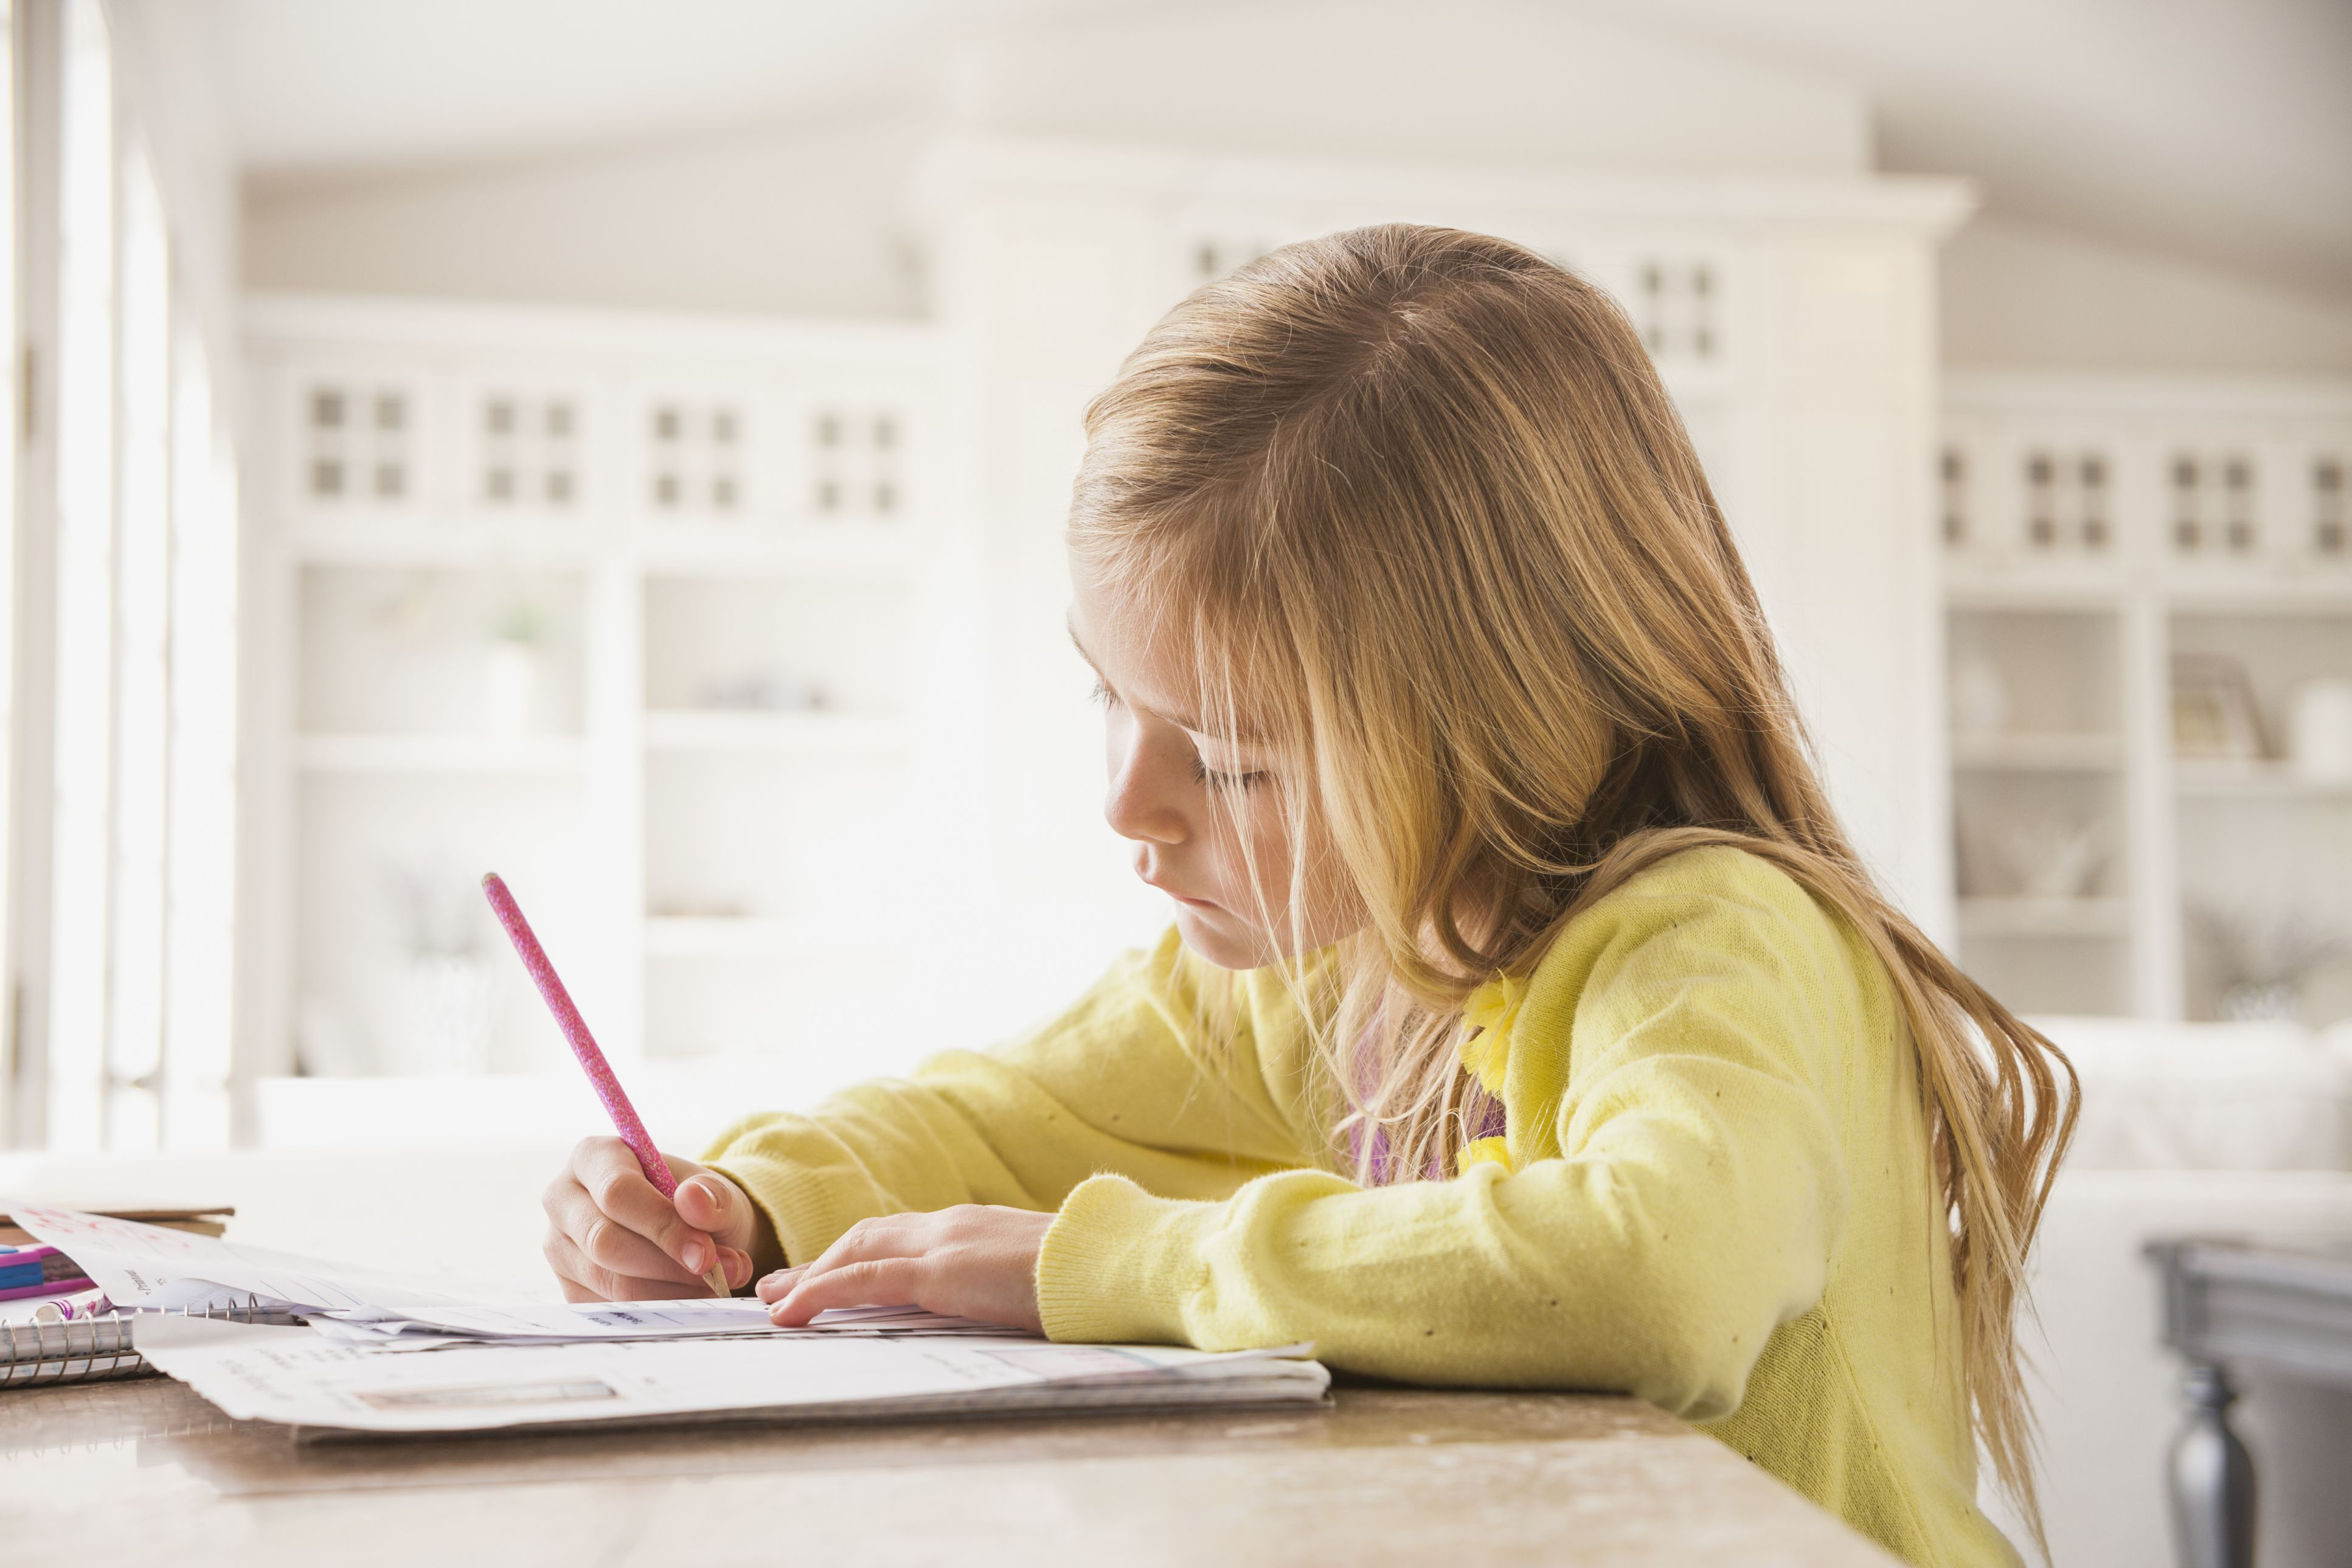 Concerta Use and Side Effects in Children With ADHD